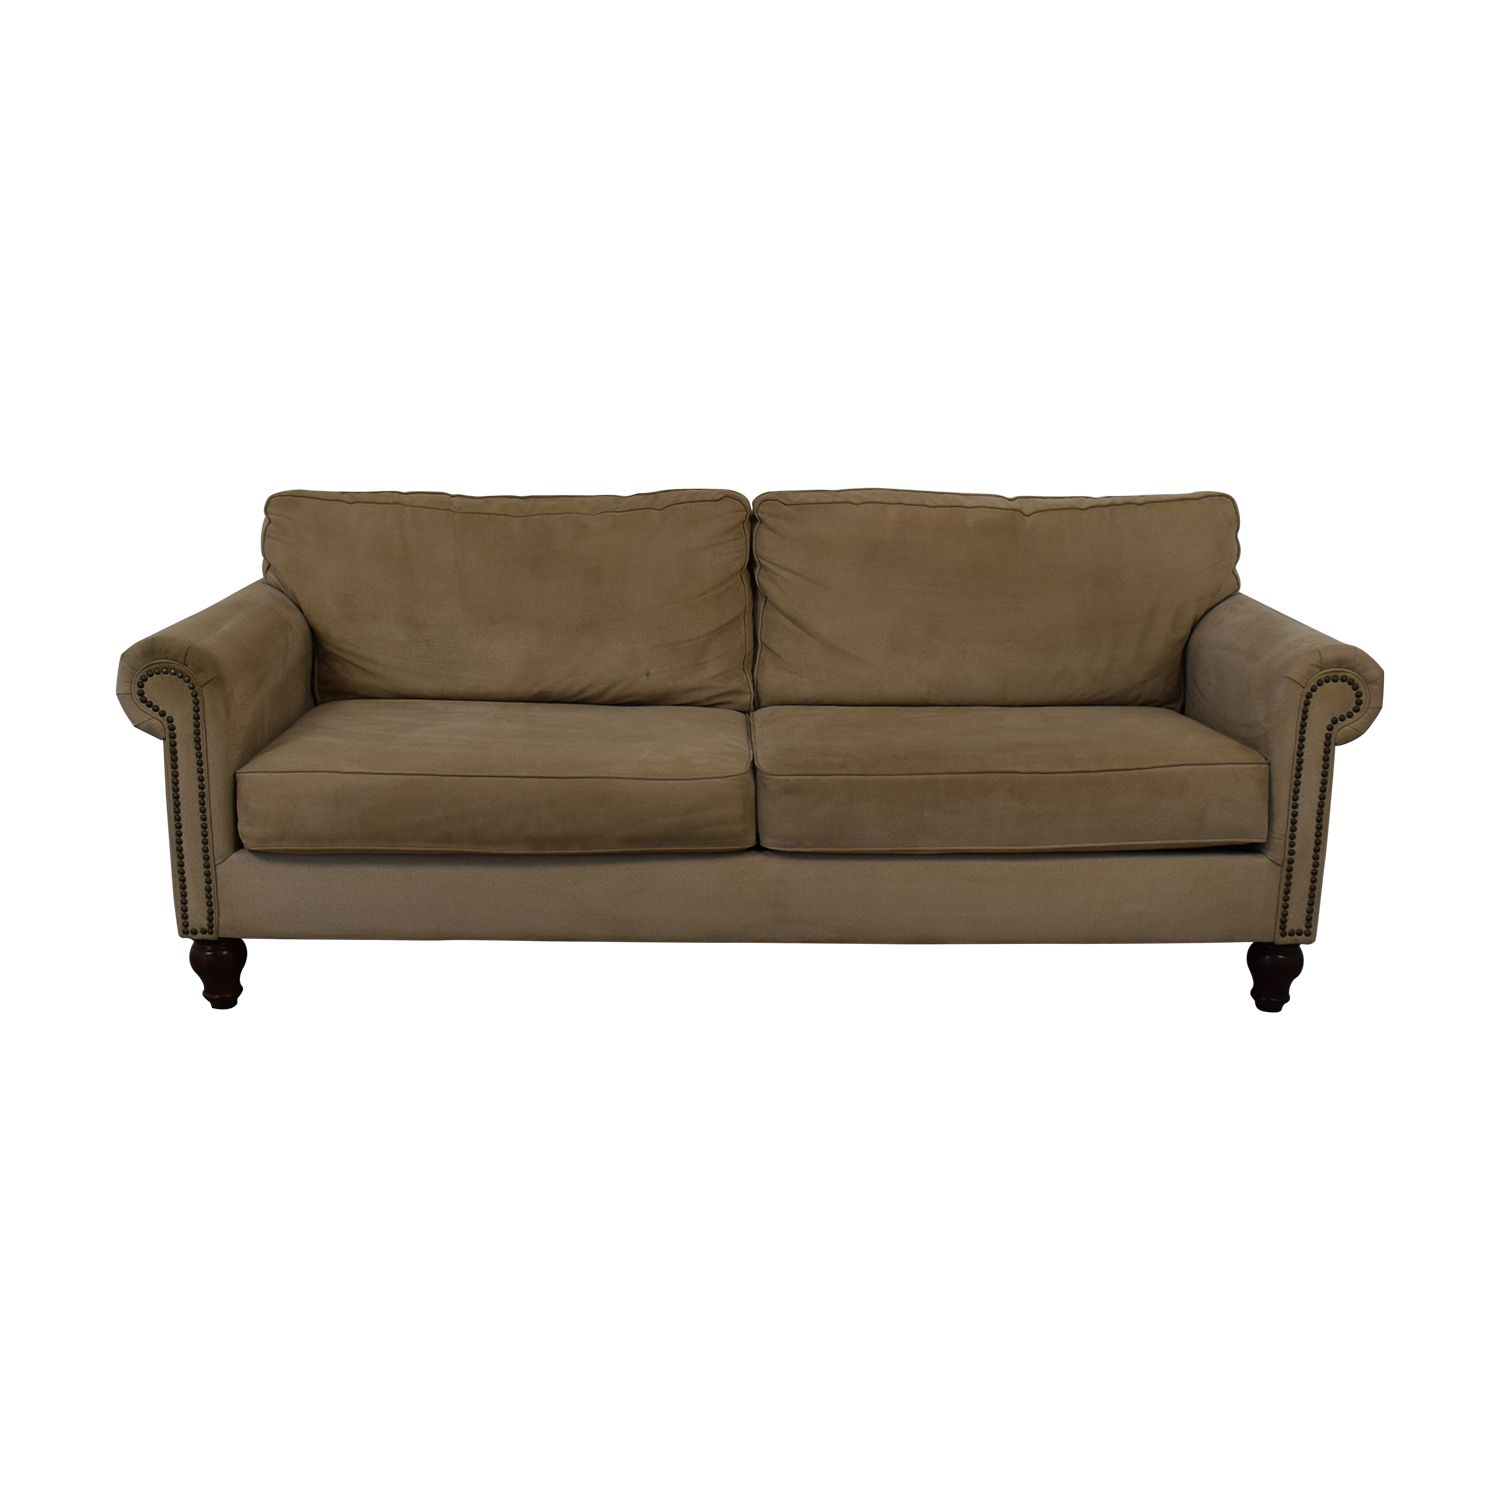 buy Pier 1 Alton Rolled Arm Sofa Pier 1 Classic Sofas